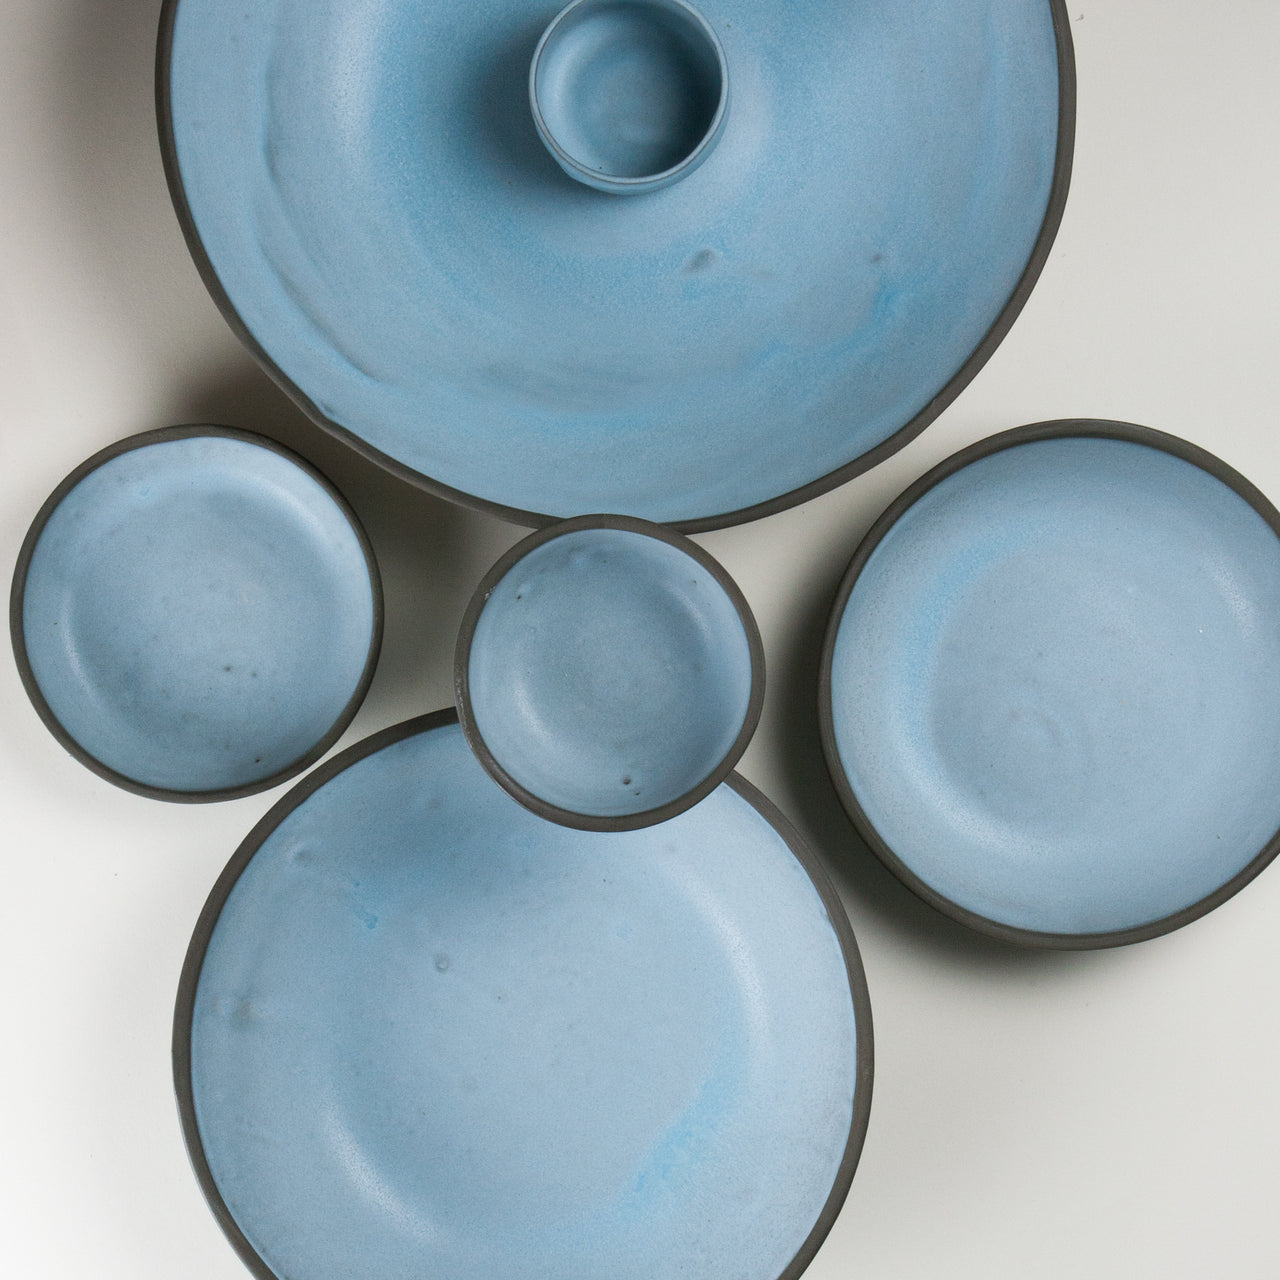 Elements Aqua Blue Bowls 2